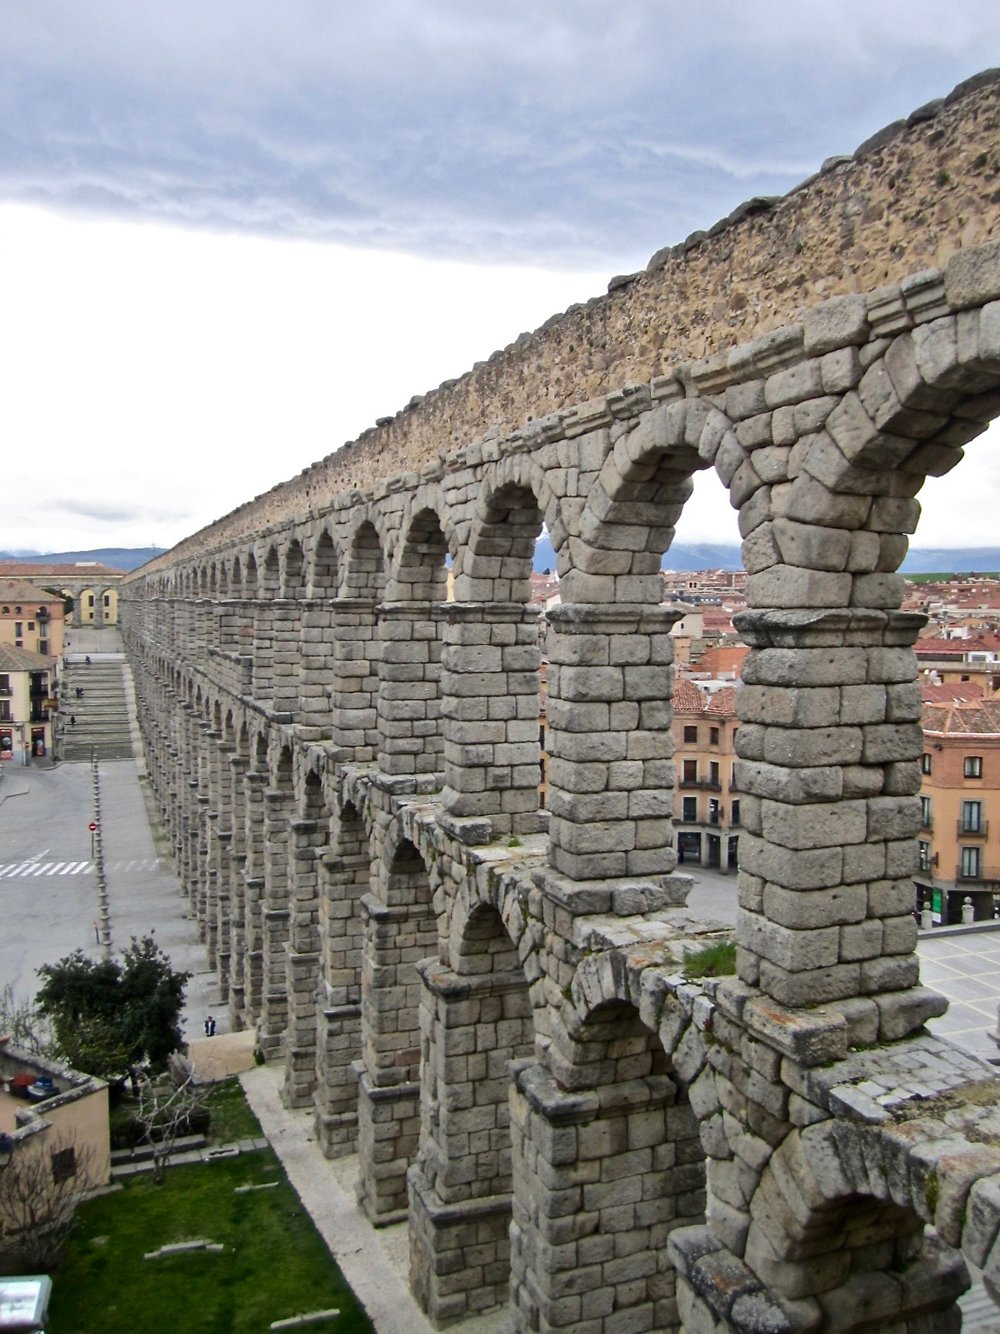 The ancient Roman aqueduct was once used to carry water.